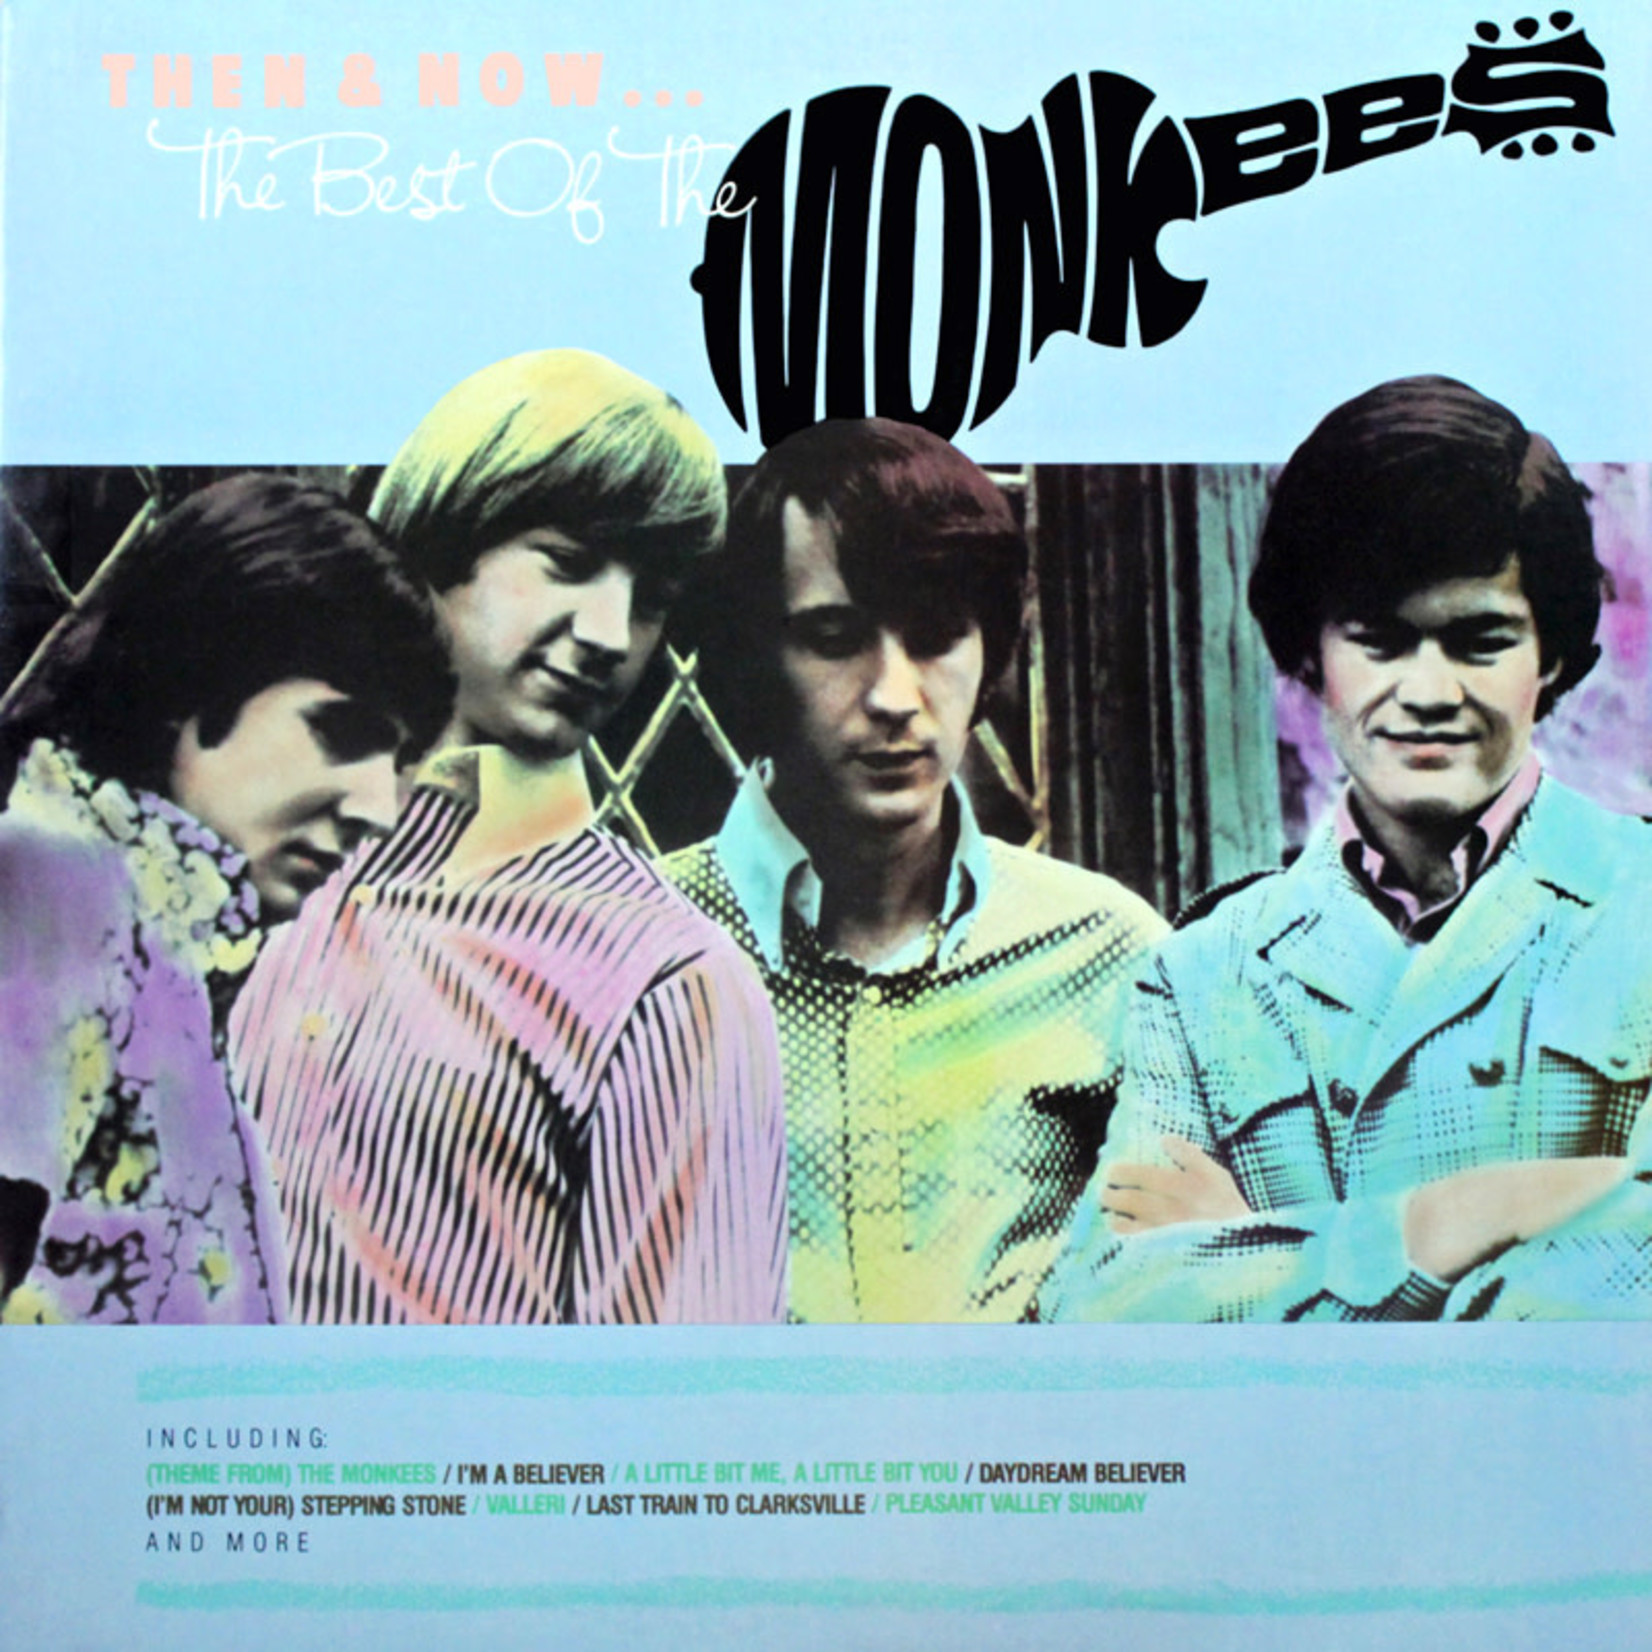 [Vintage] Monkees: Then & Now...The Best of...